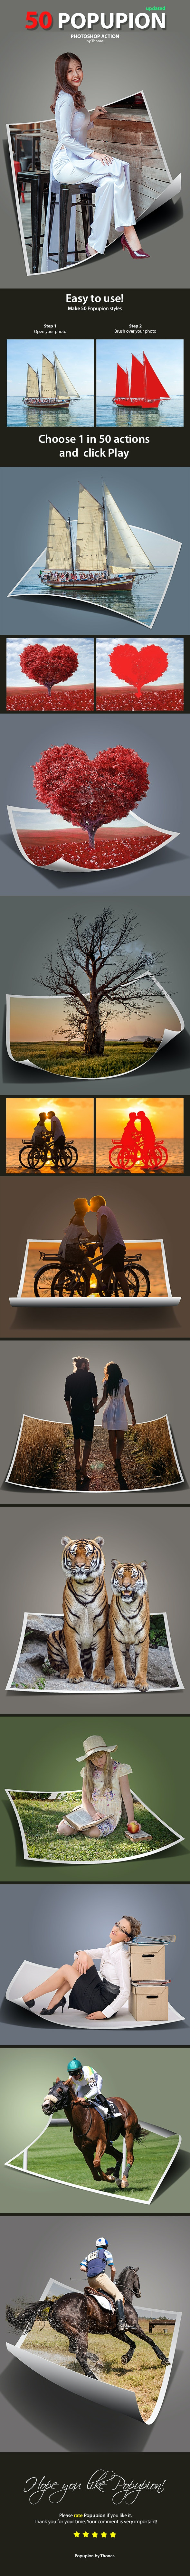 50 Popupion - Photo Effects Actions